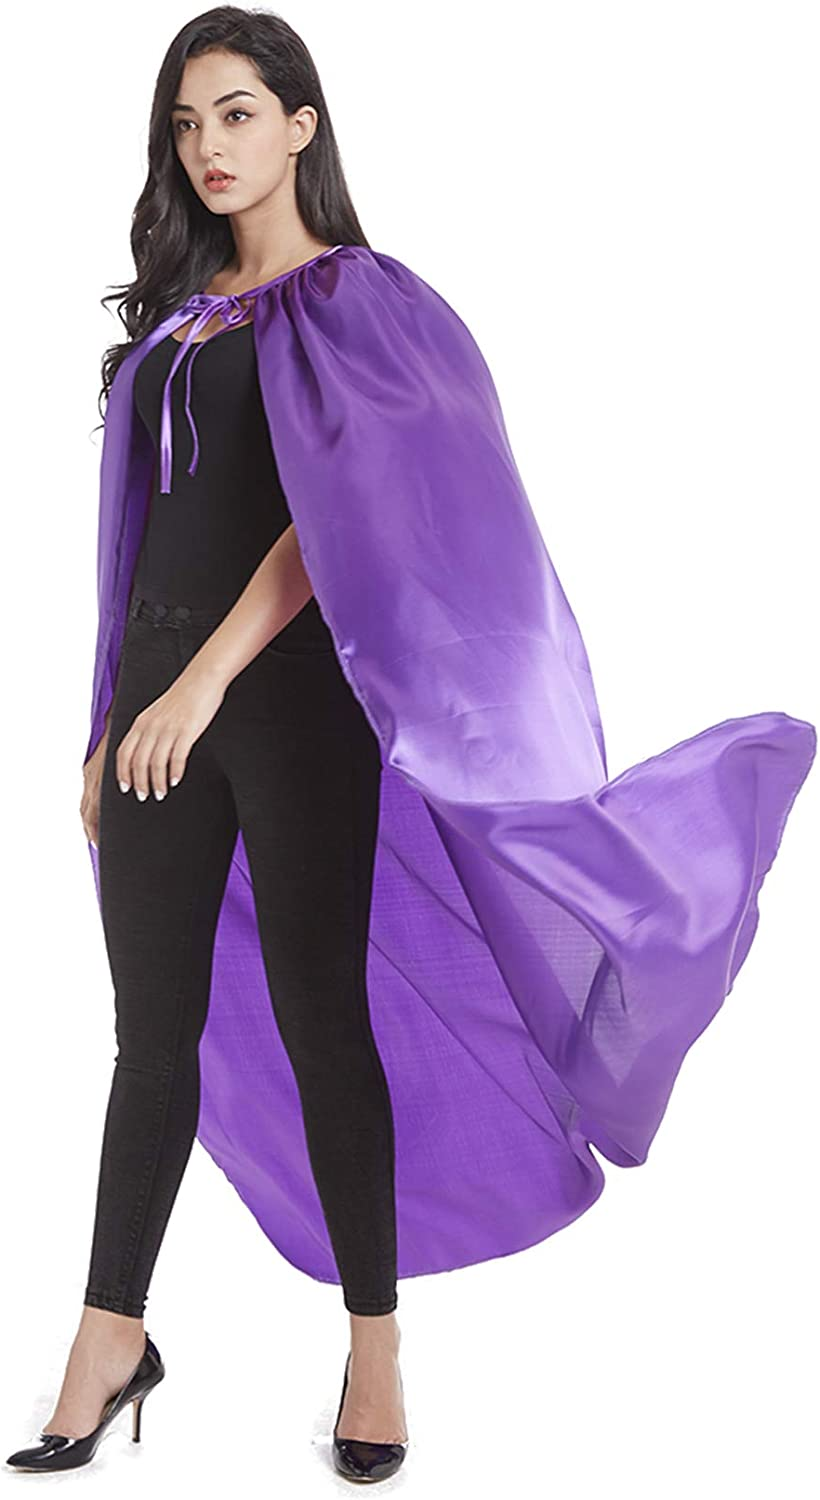 Crizcape Adults Capes Womens and Mens DIY Dress up Costume Capes for Party